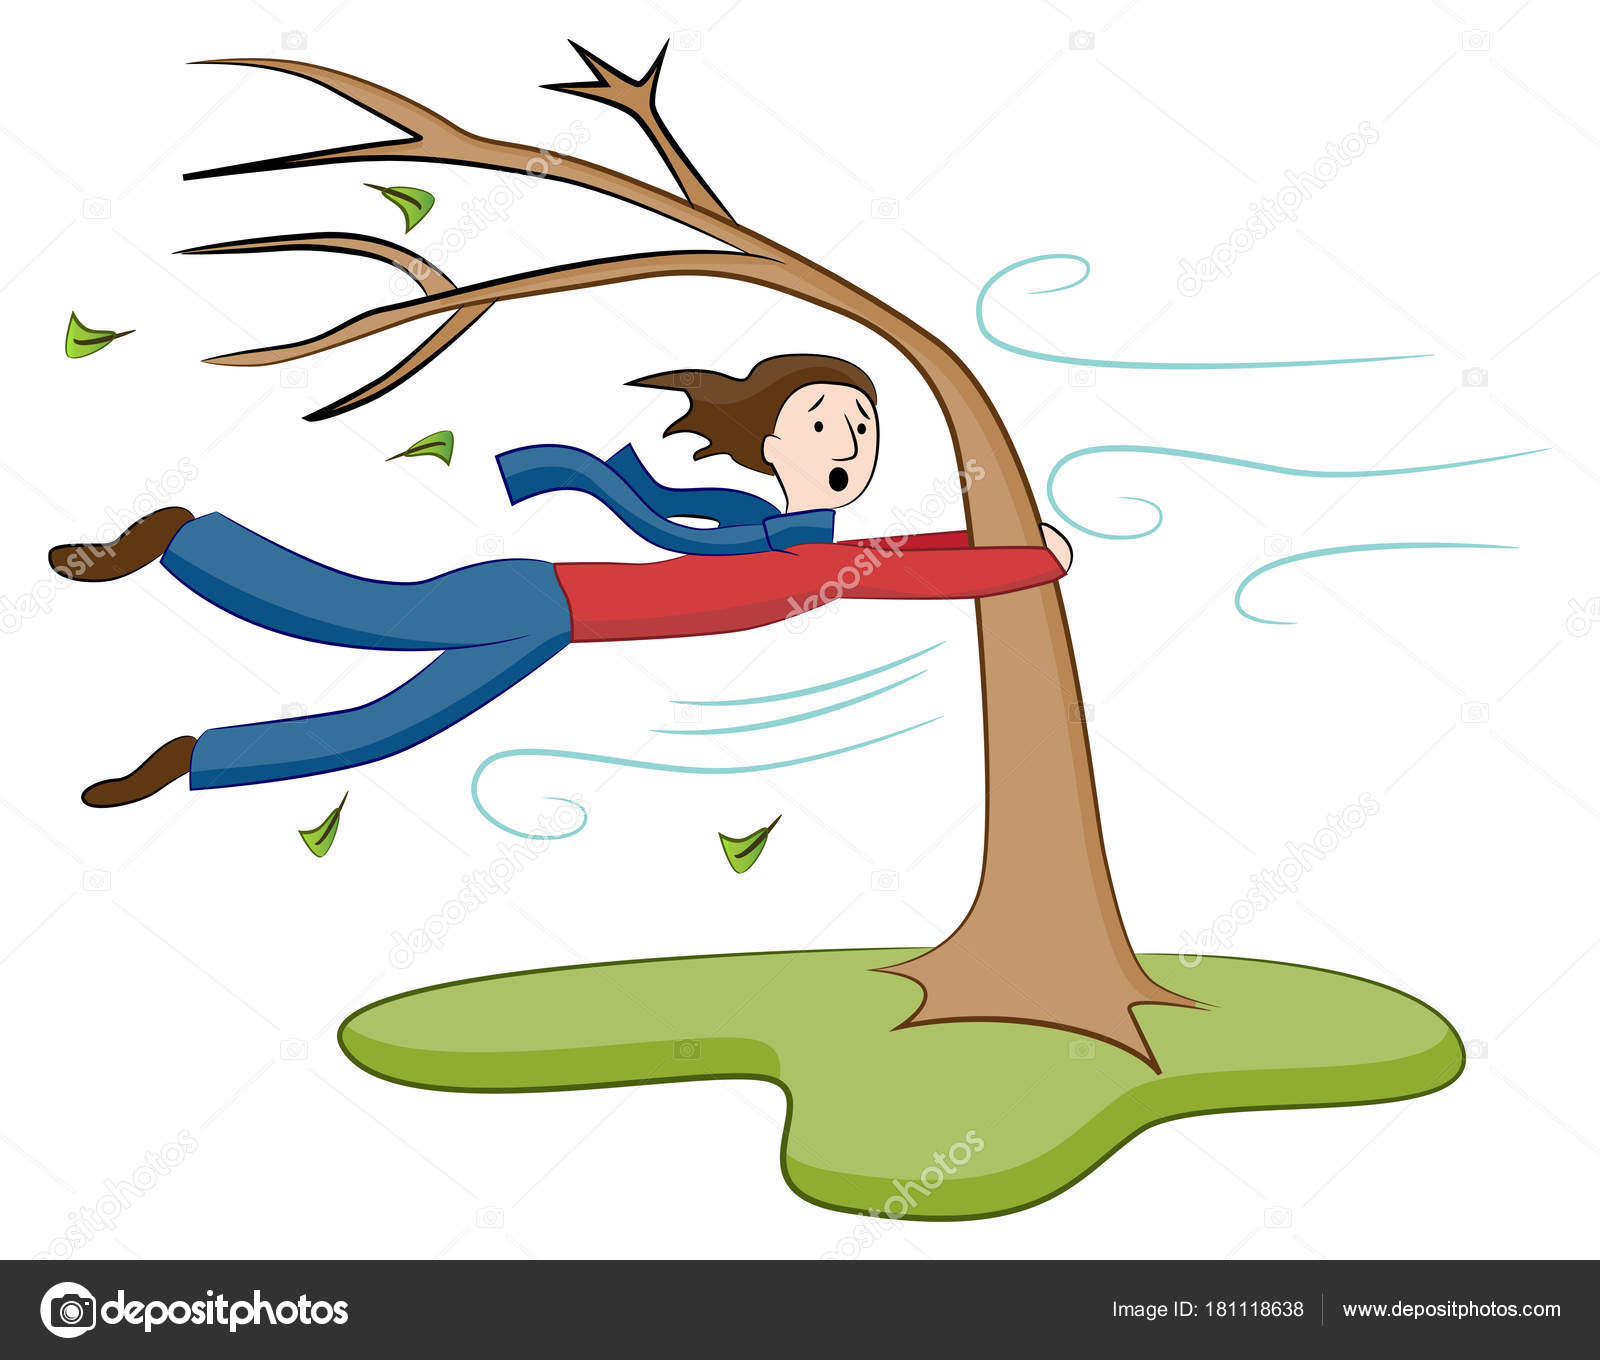 windy trees clip art www pixshark com images galleries falling leaves clip art transparent background falling leaves clip art transparent background